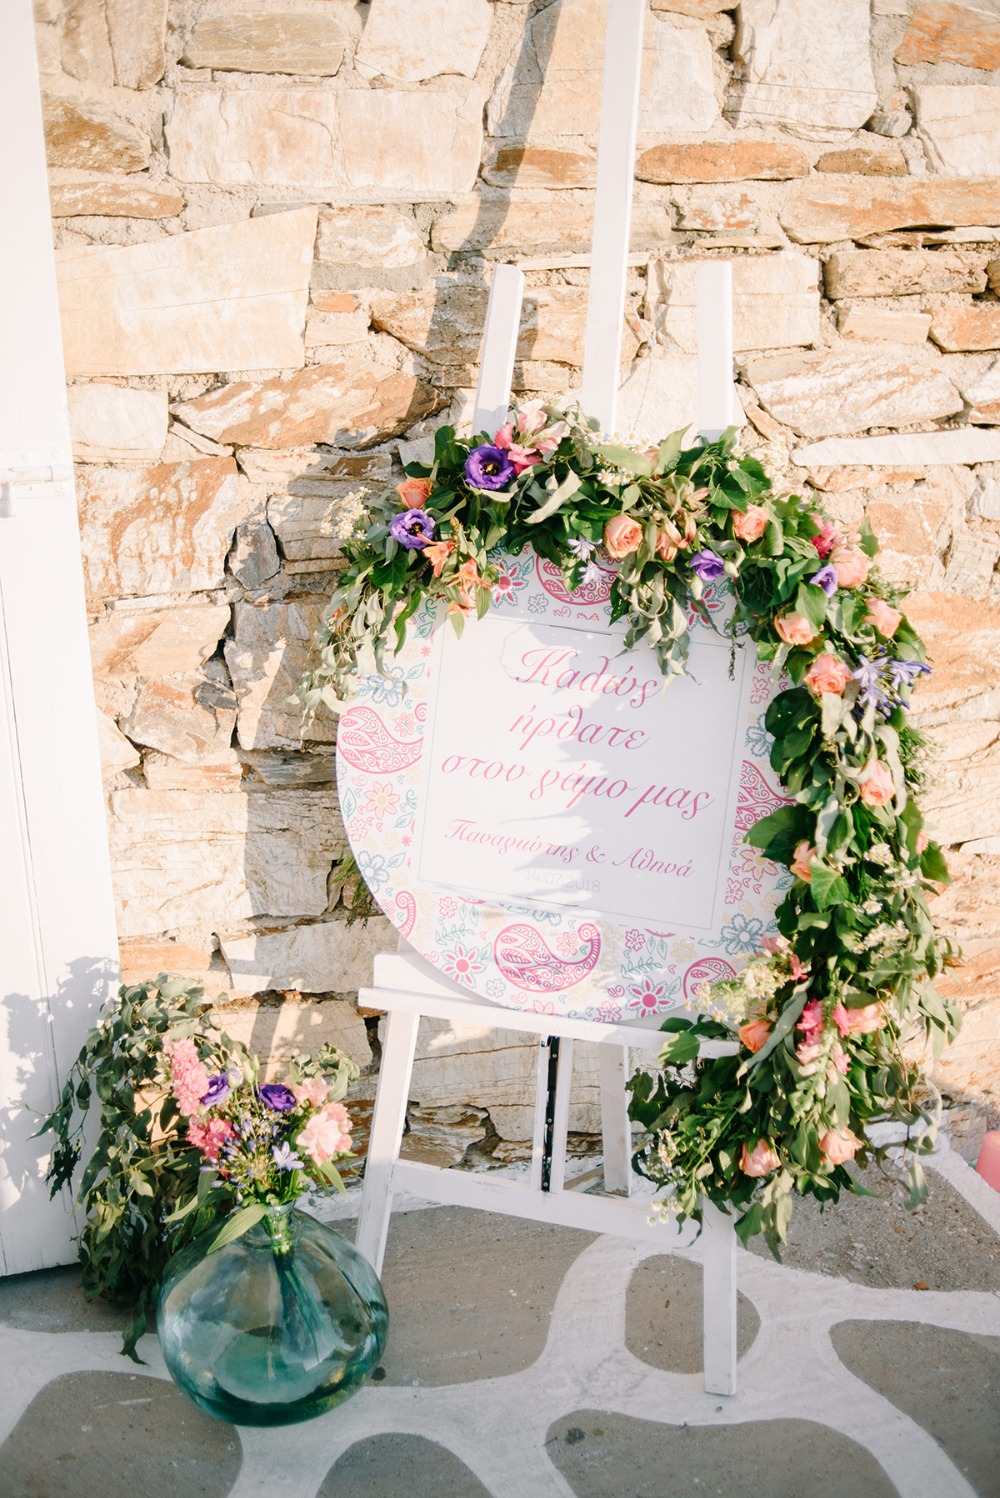 wedding sign with floral garland